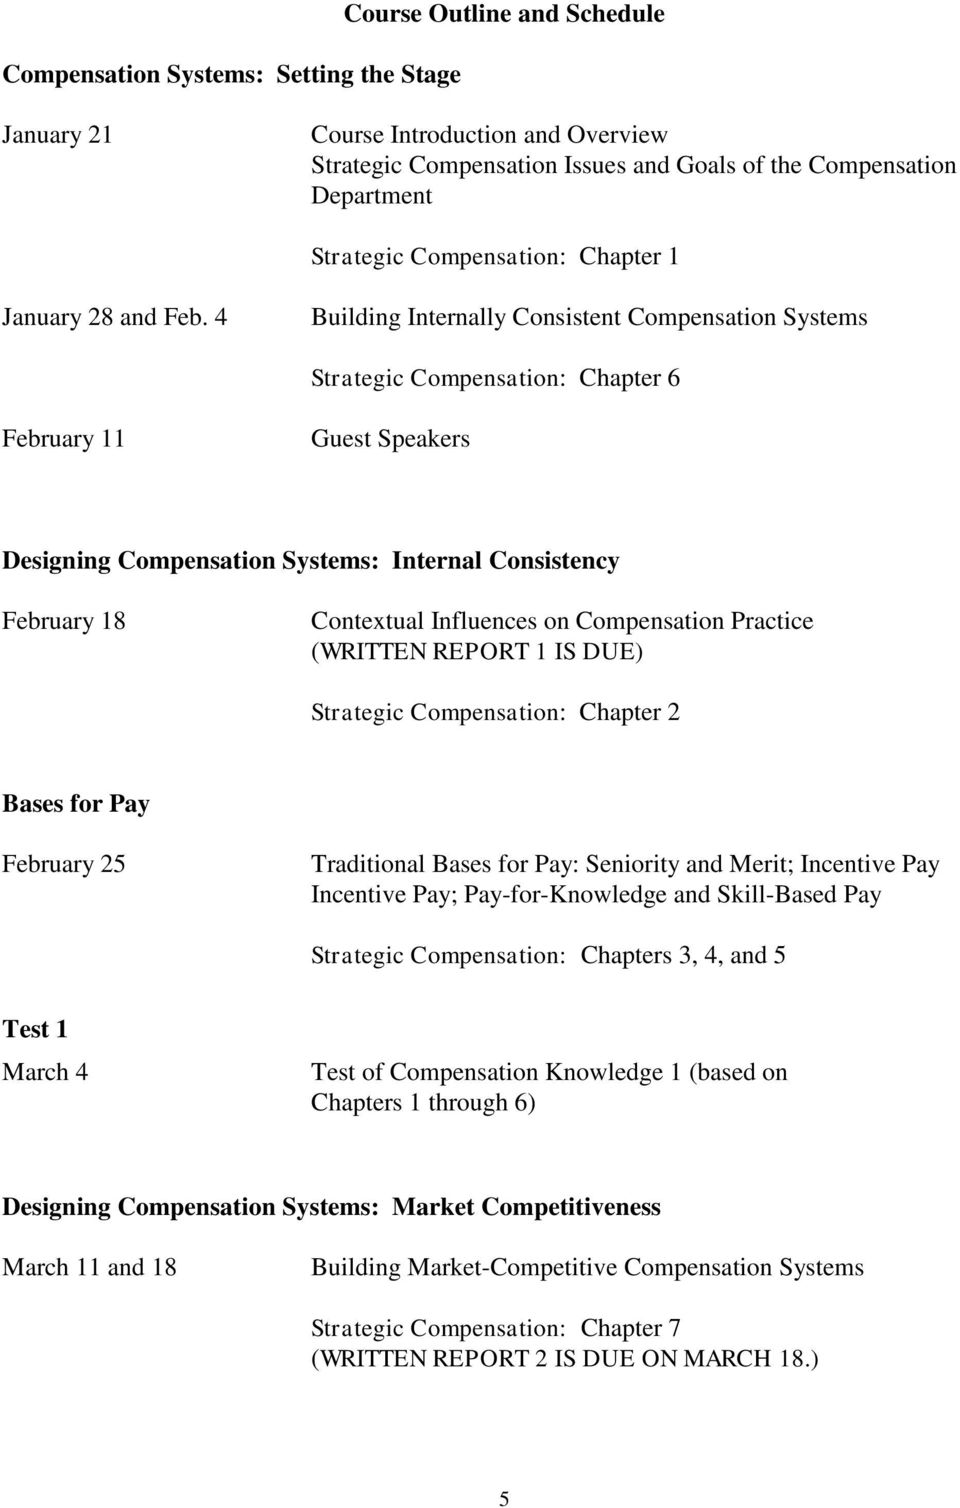 4 Building Internally Consistent Compensation Systems Strategic Compensation: Chapter 6 February 11 Guest Speakers Designing Compensation Systems: Internal Consistency February 18 Contextual